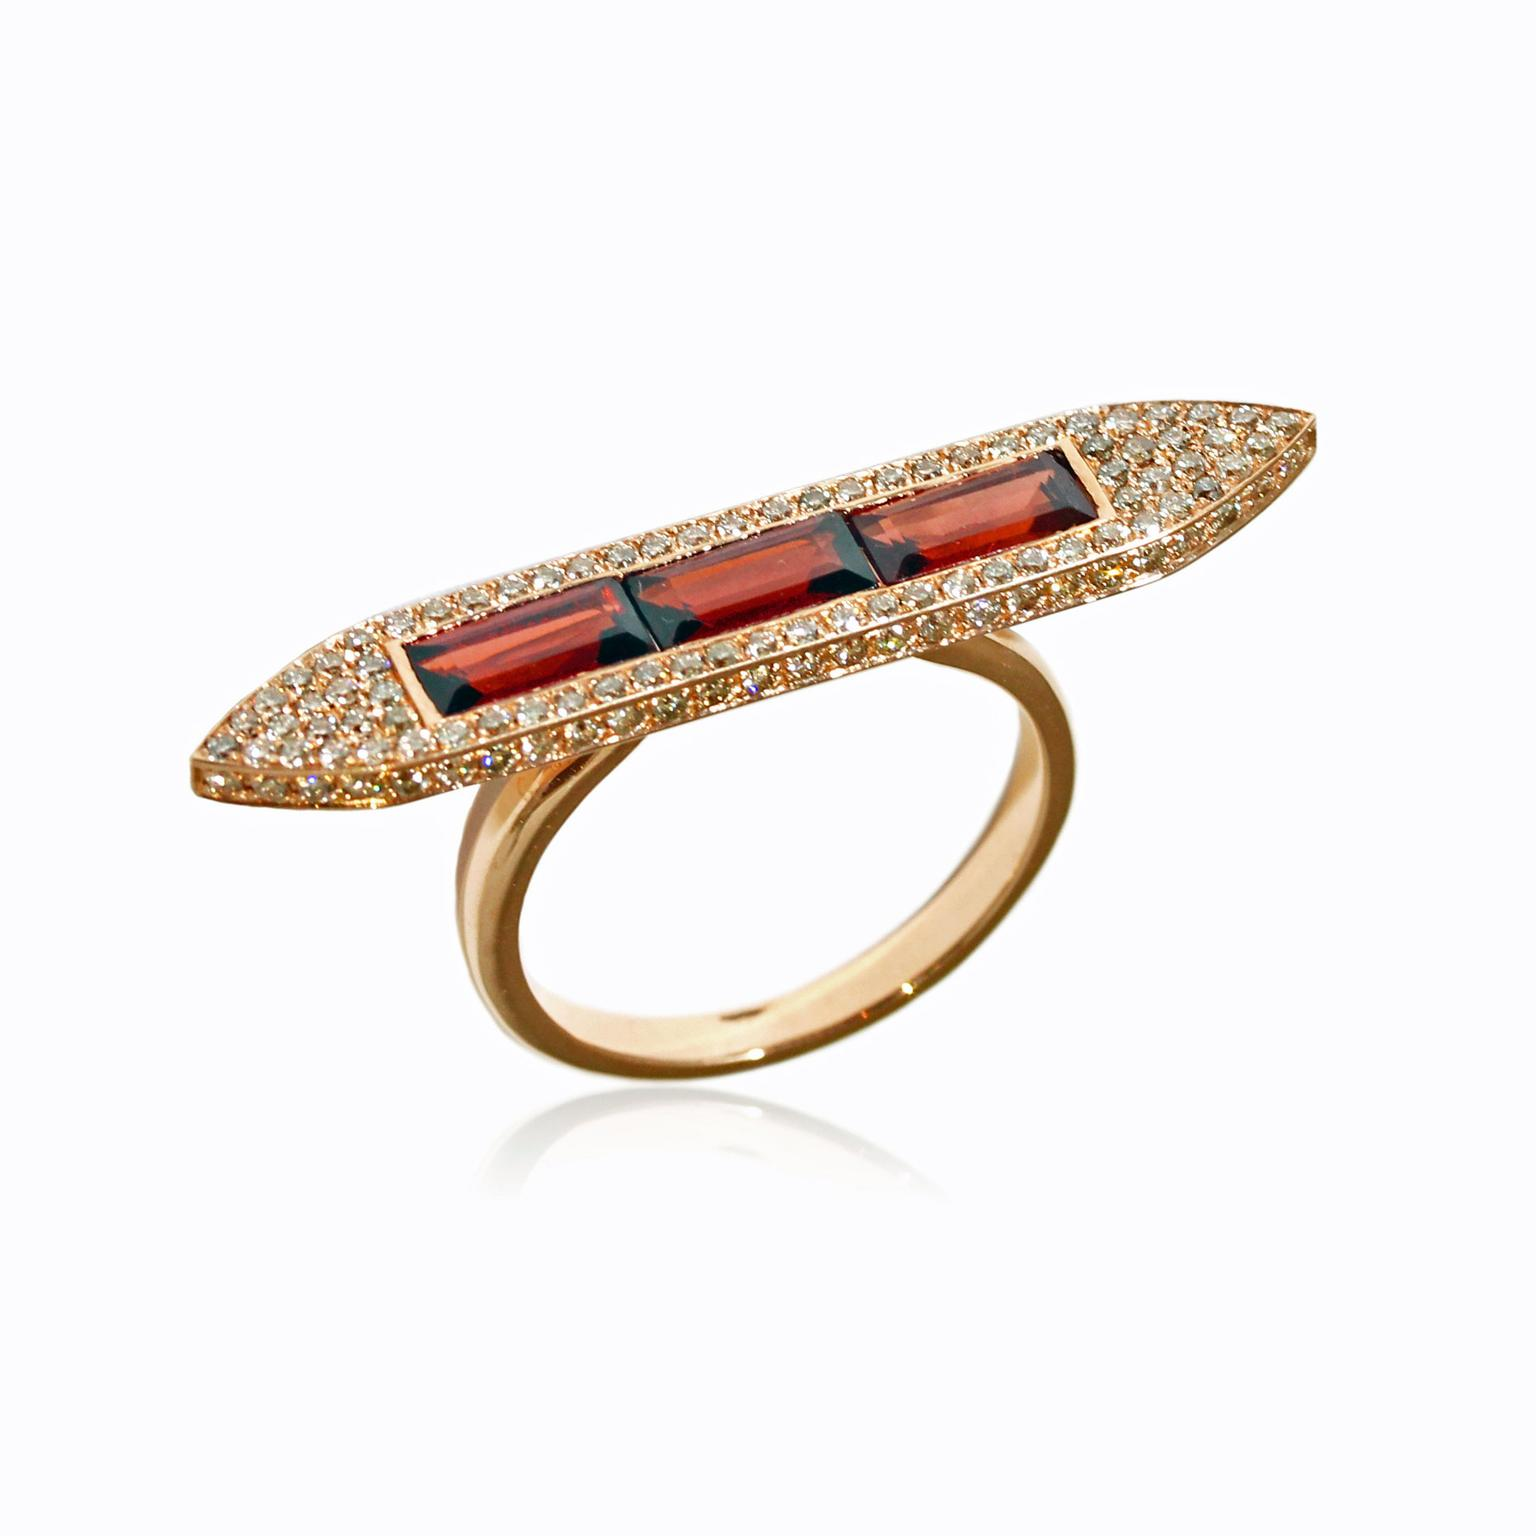 Ralph Masri geometric rose gold and diamond ring